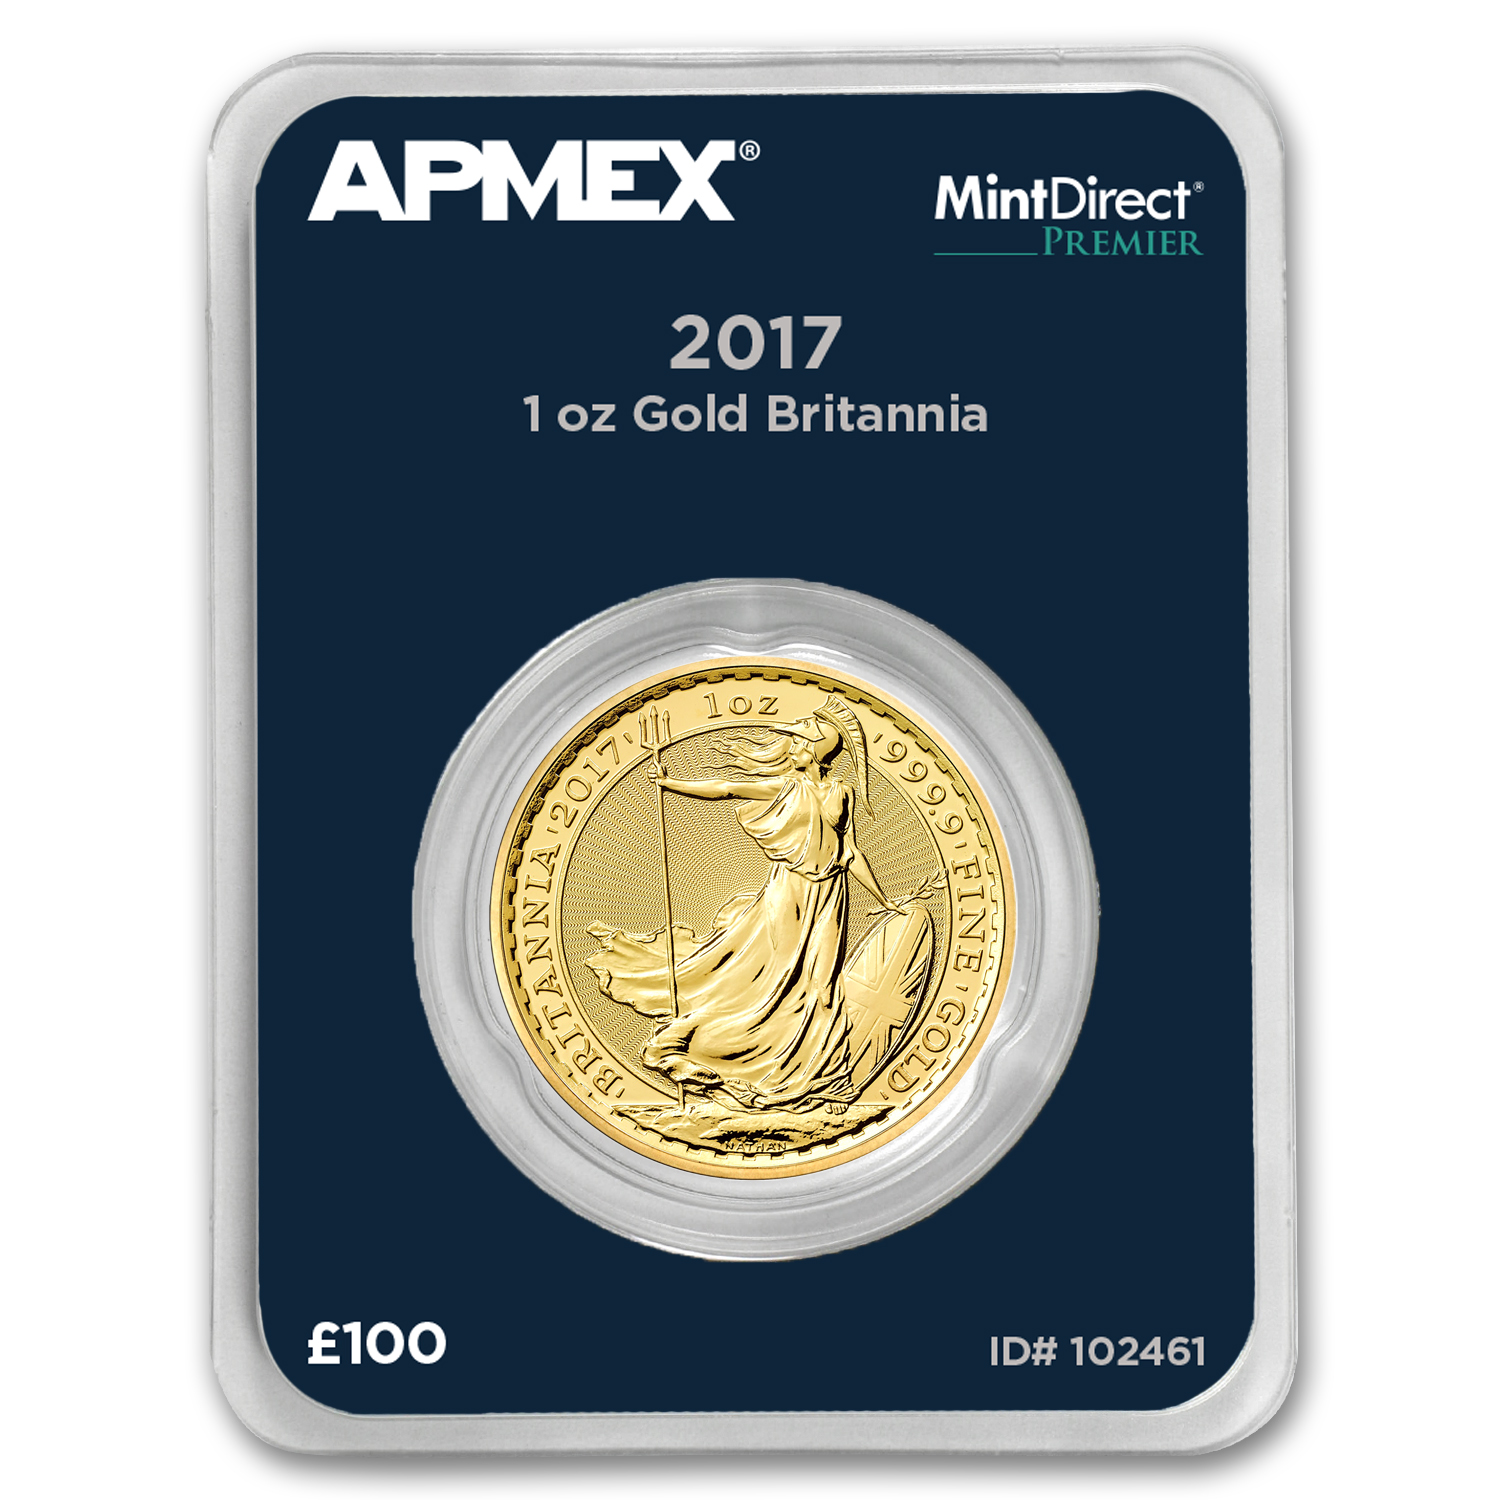 2017 GB 1 oz Gold Britannia (MintDirect® Premier Single)